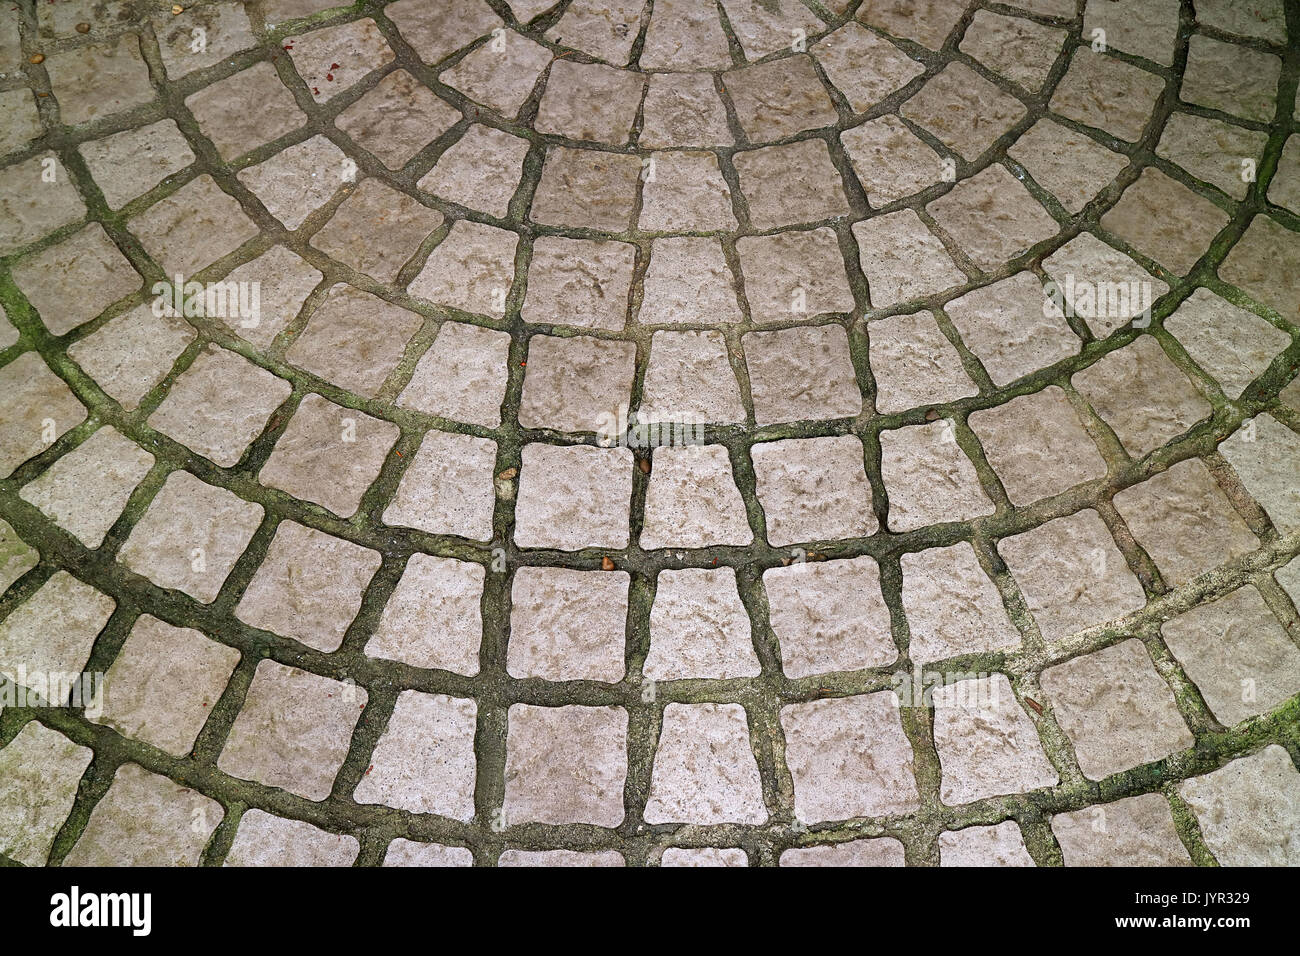 https www alamy com stone paved circular patio for background texture or pattern image154785969 html